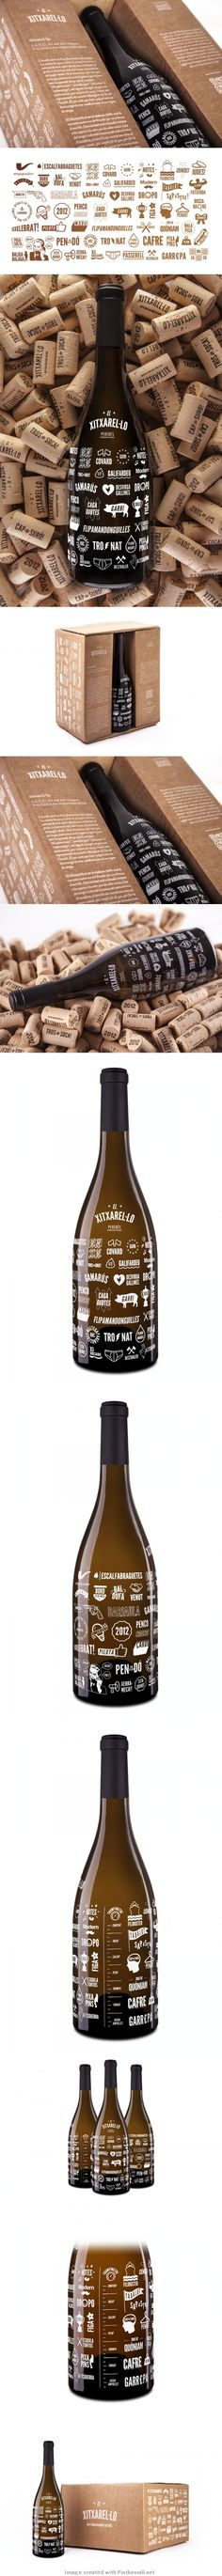 El Xitxarel·lo. Catalan Wine Label